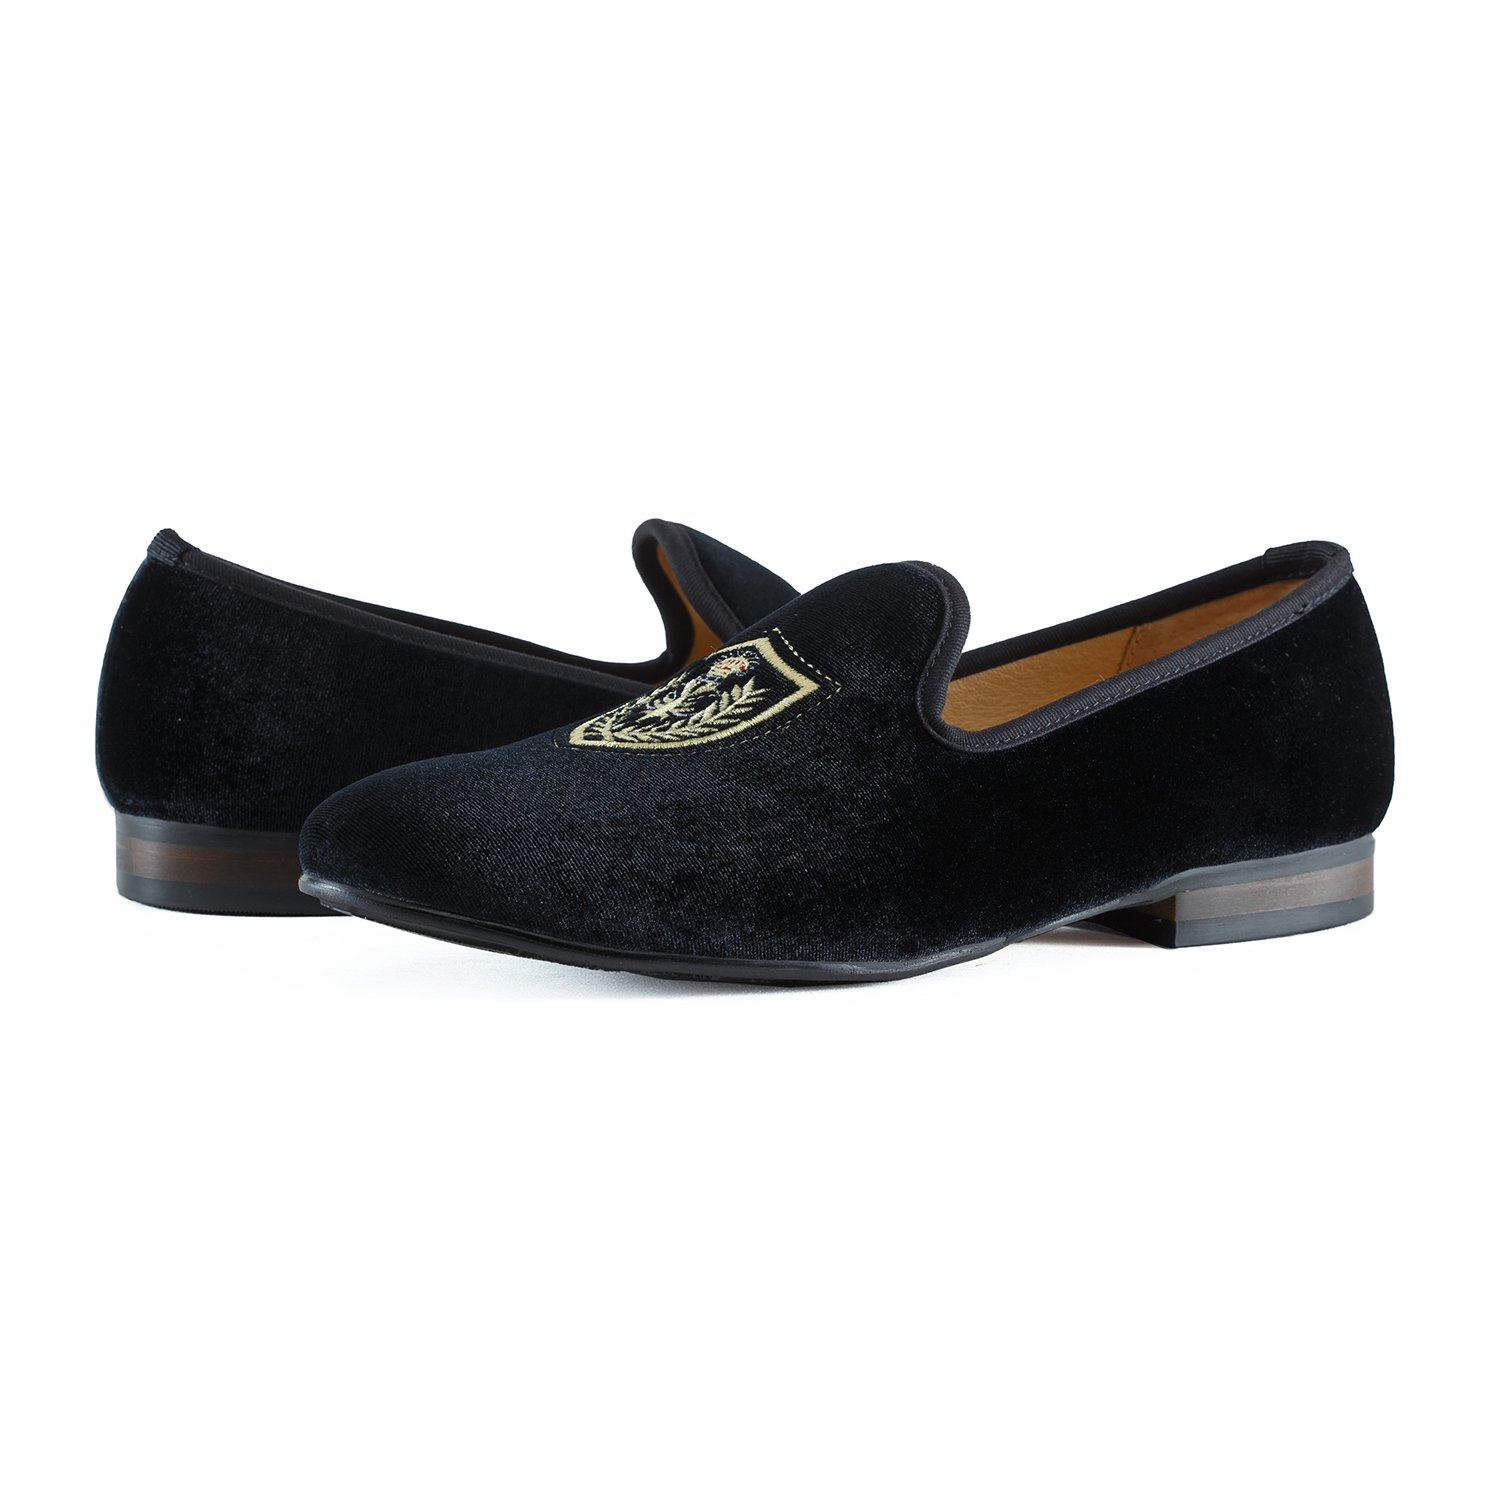 59b6297d3e9 Journey West Men s Vintage Velvet Loafers with Embroidery Loafers Men  Smoking Slippers Men Black Red Blue  Amazon.co.uk  Shoes   Bags